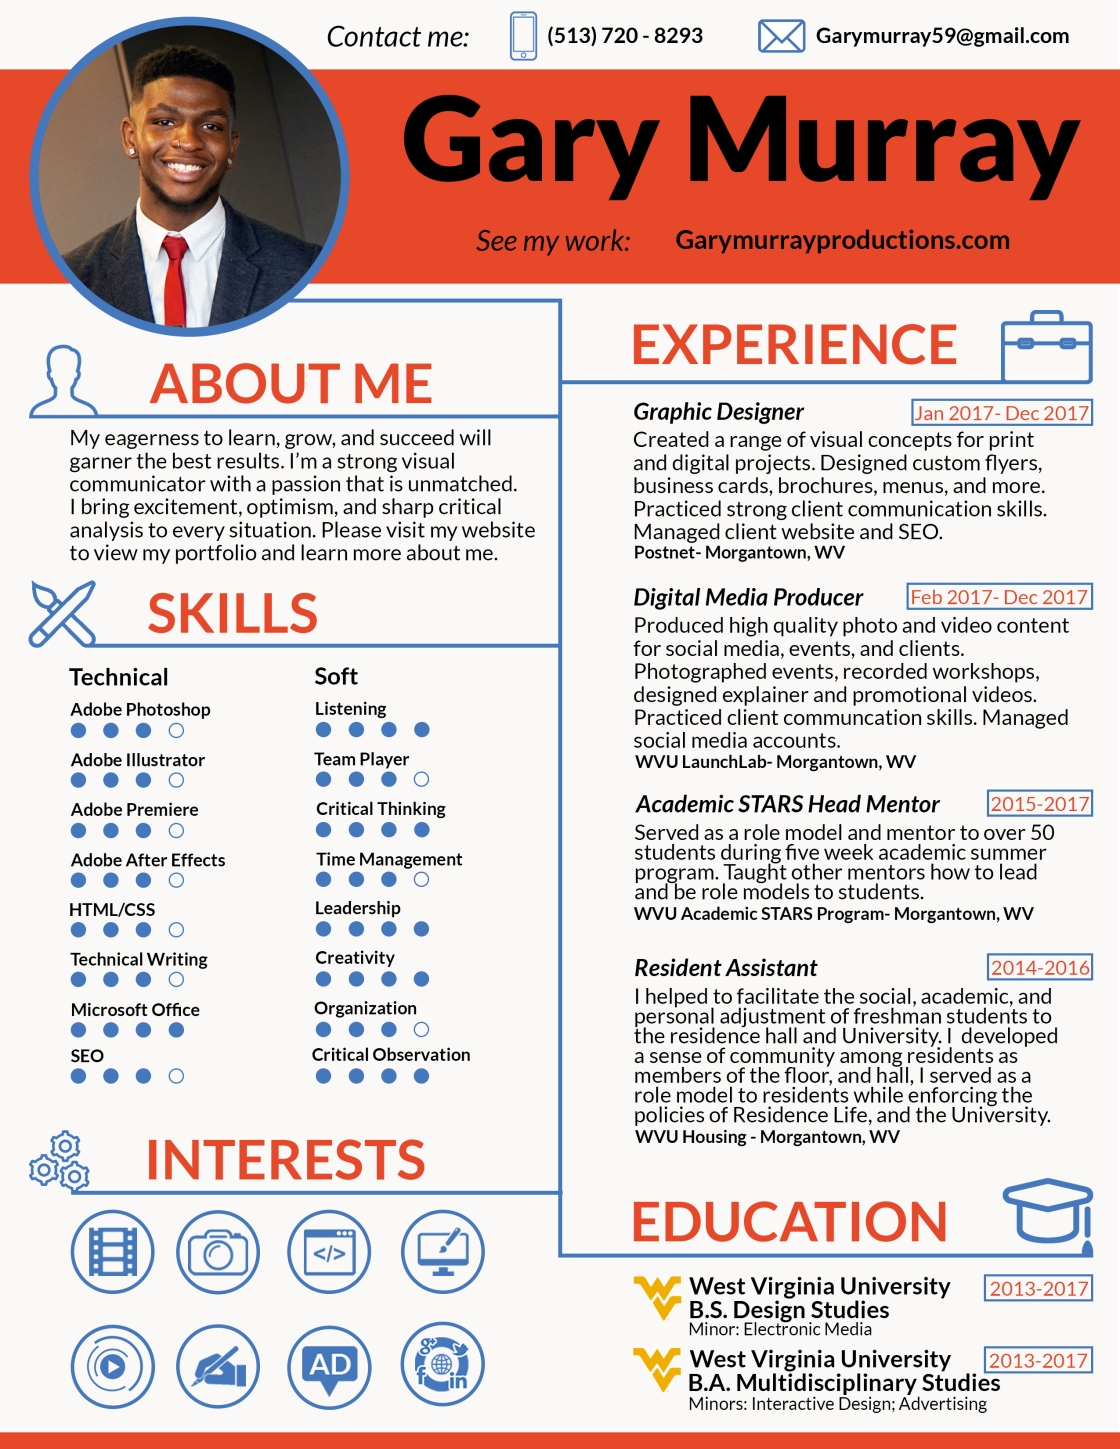 Gary Murray Design Resume pic